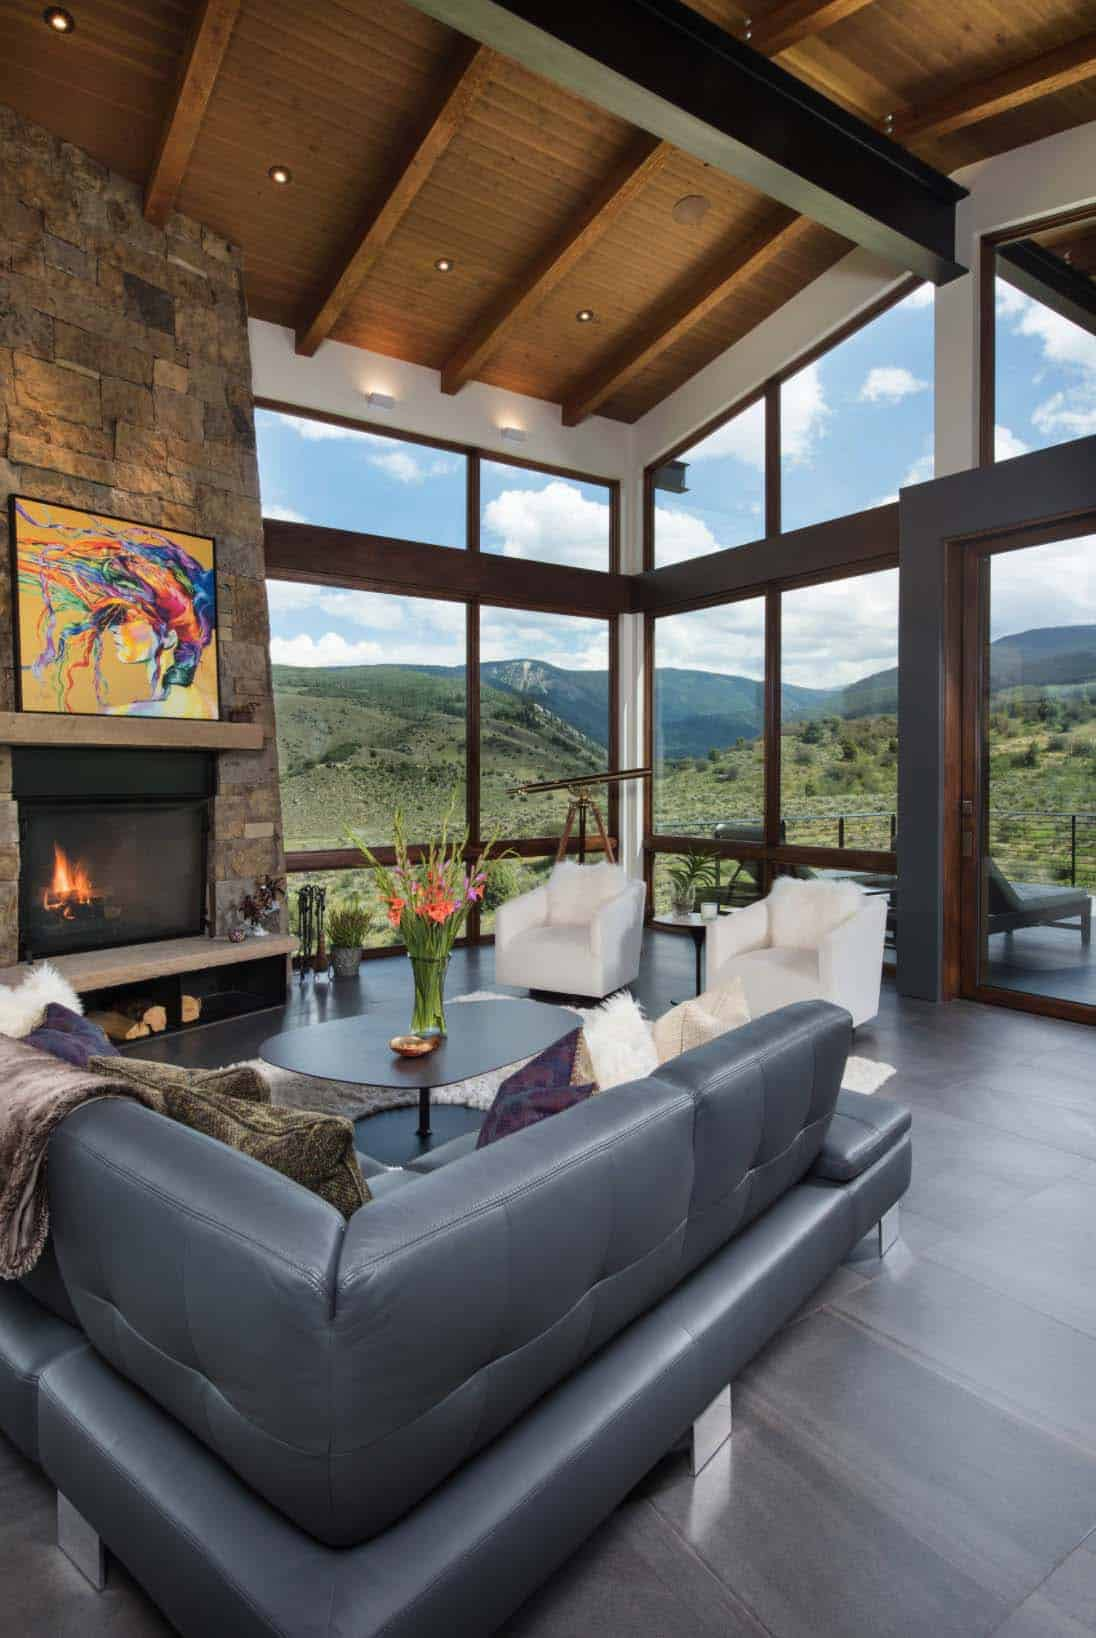 Contemporary Mountain Home Renovation-Berglund Architects-09-1 Kindesign